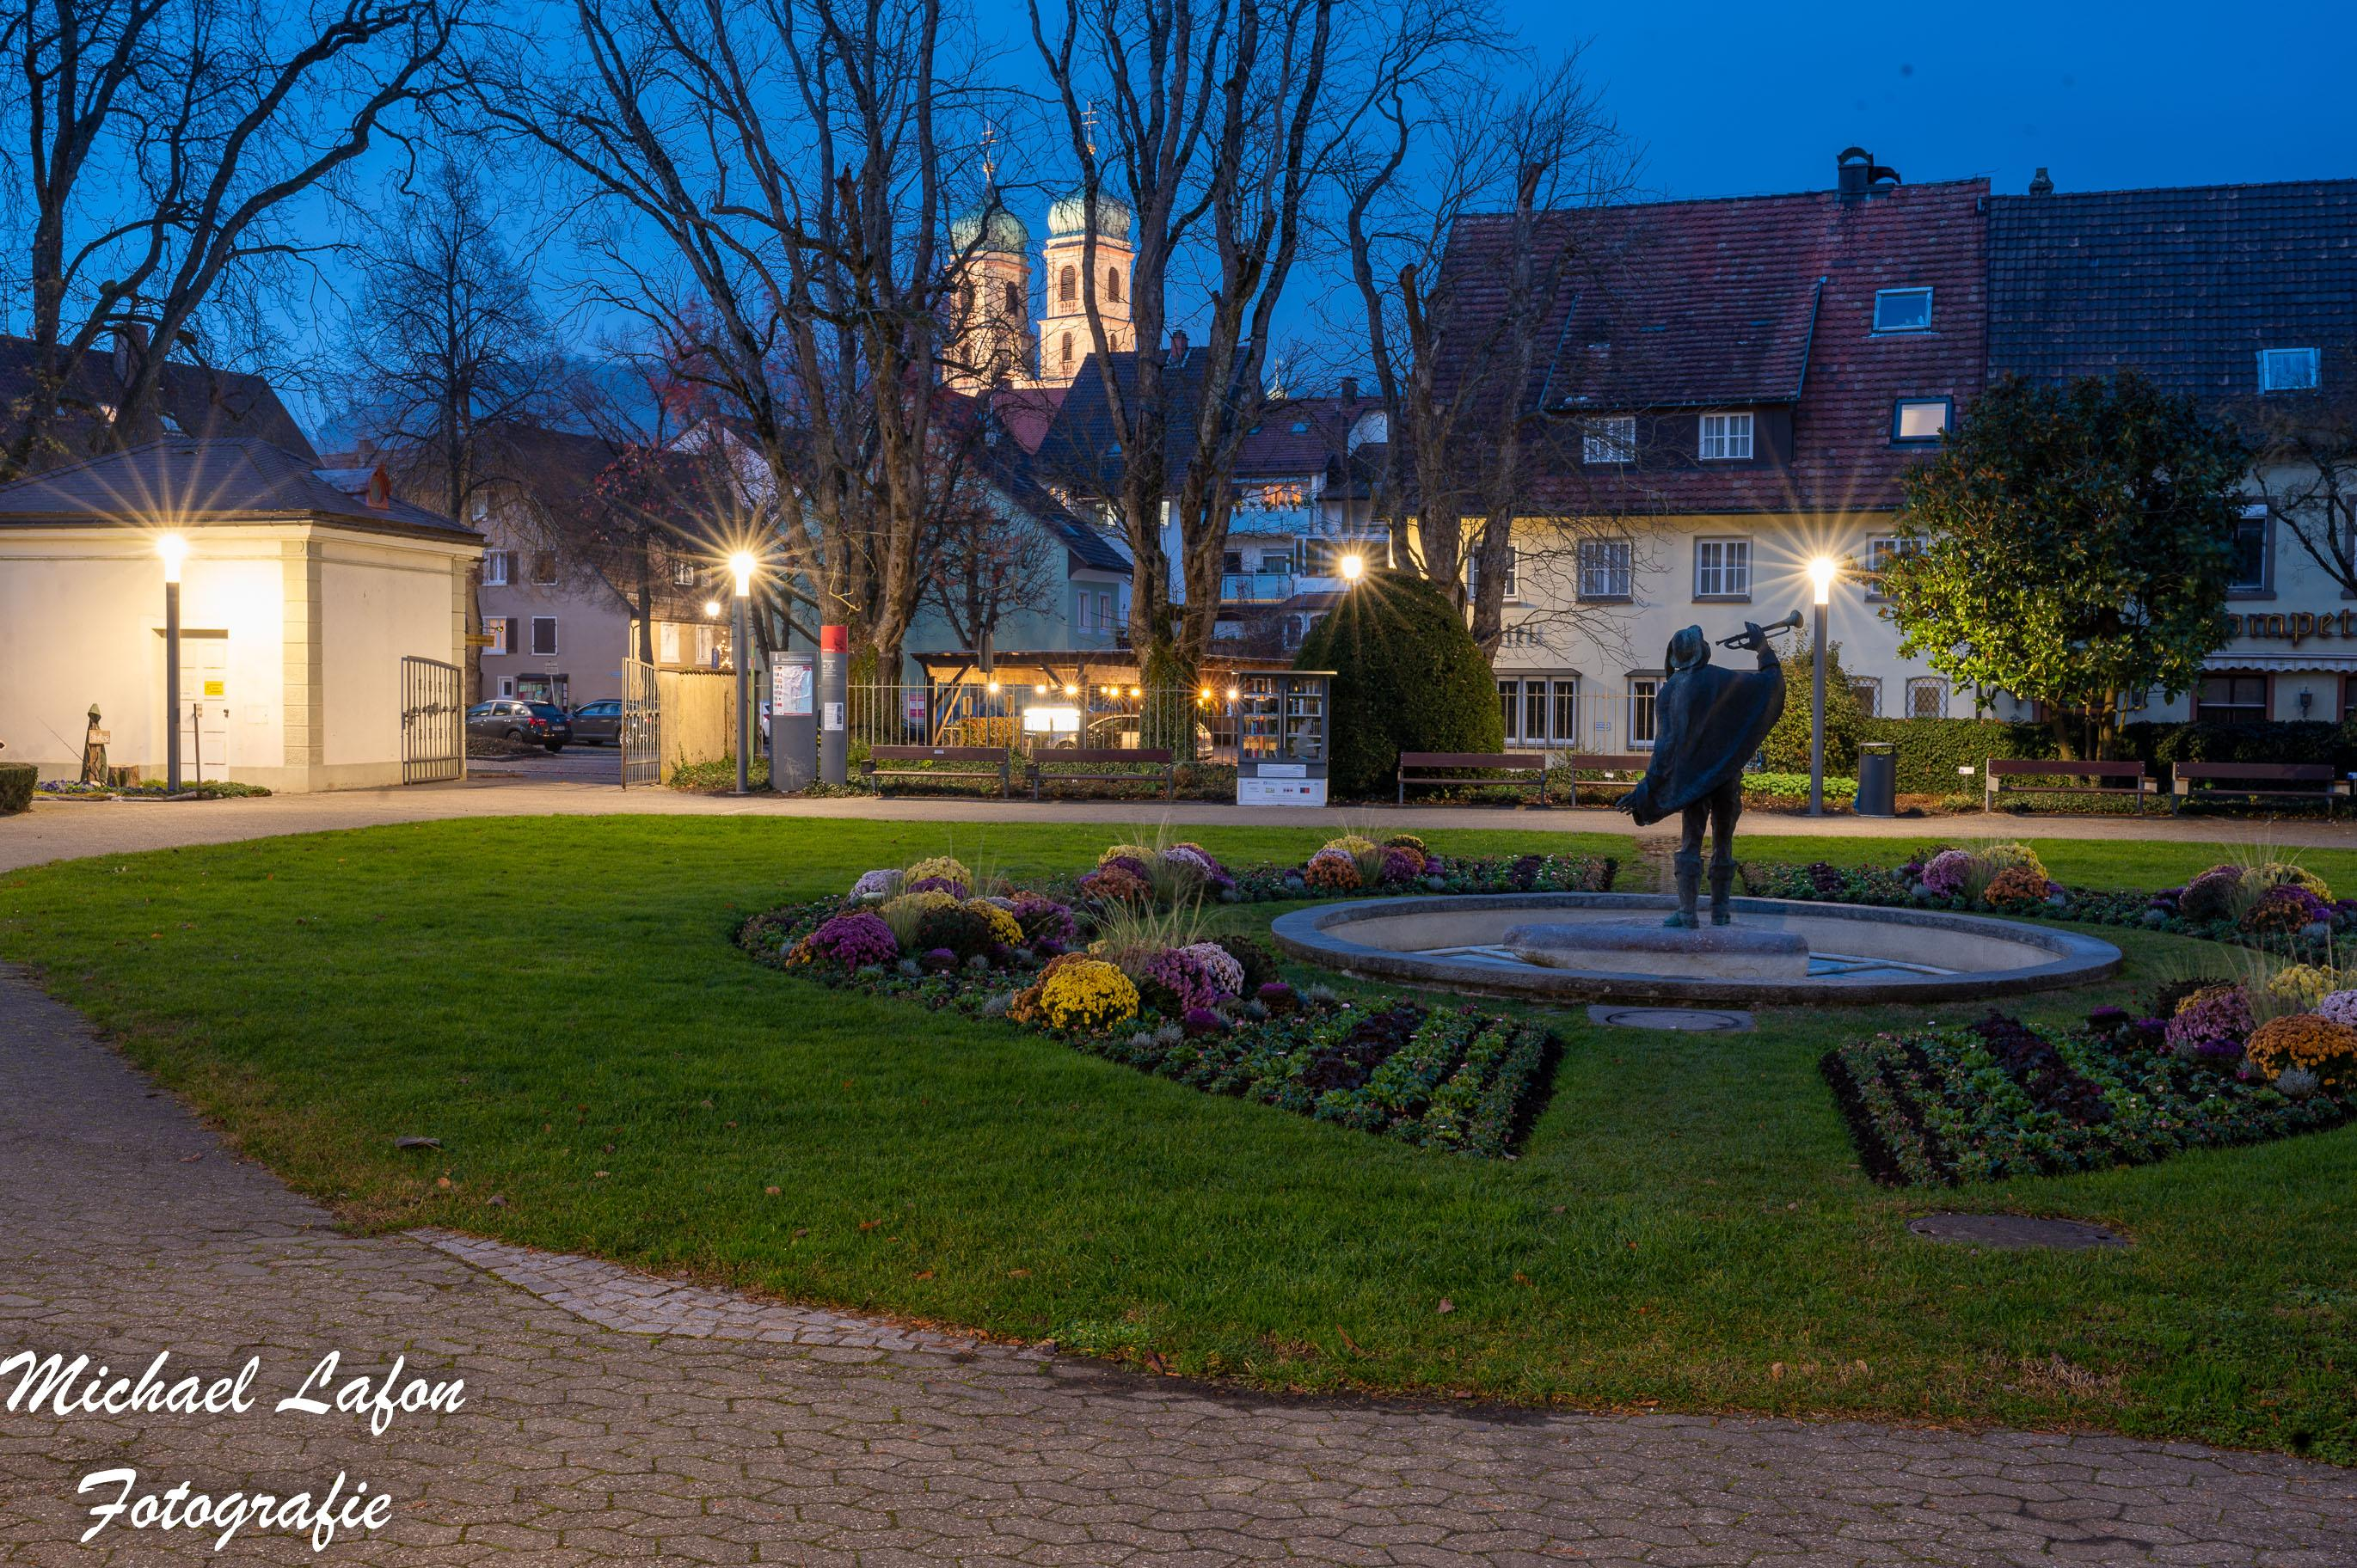 Michael Lafon Fotografie | Bad Säckingen | Bad Säckingen Bild 07